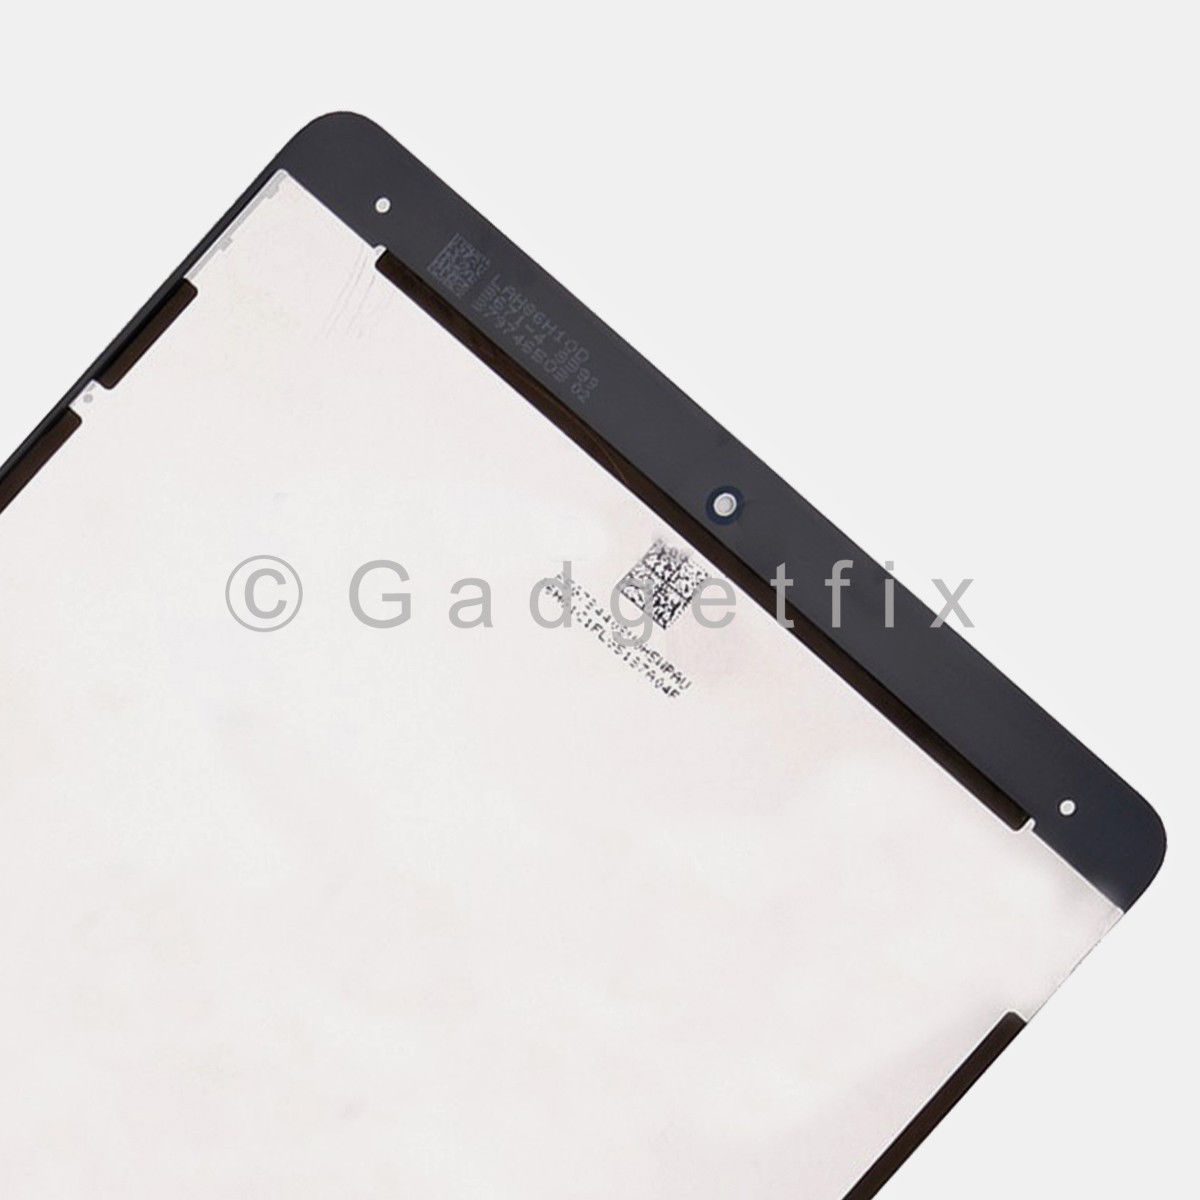 Black LCD Screen Display Touch Screen Digitizer For iPad Pro 10.5 A1701 A1709